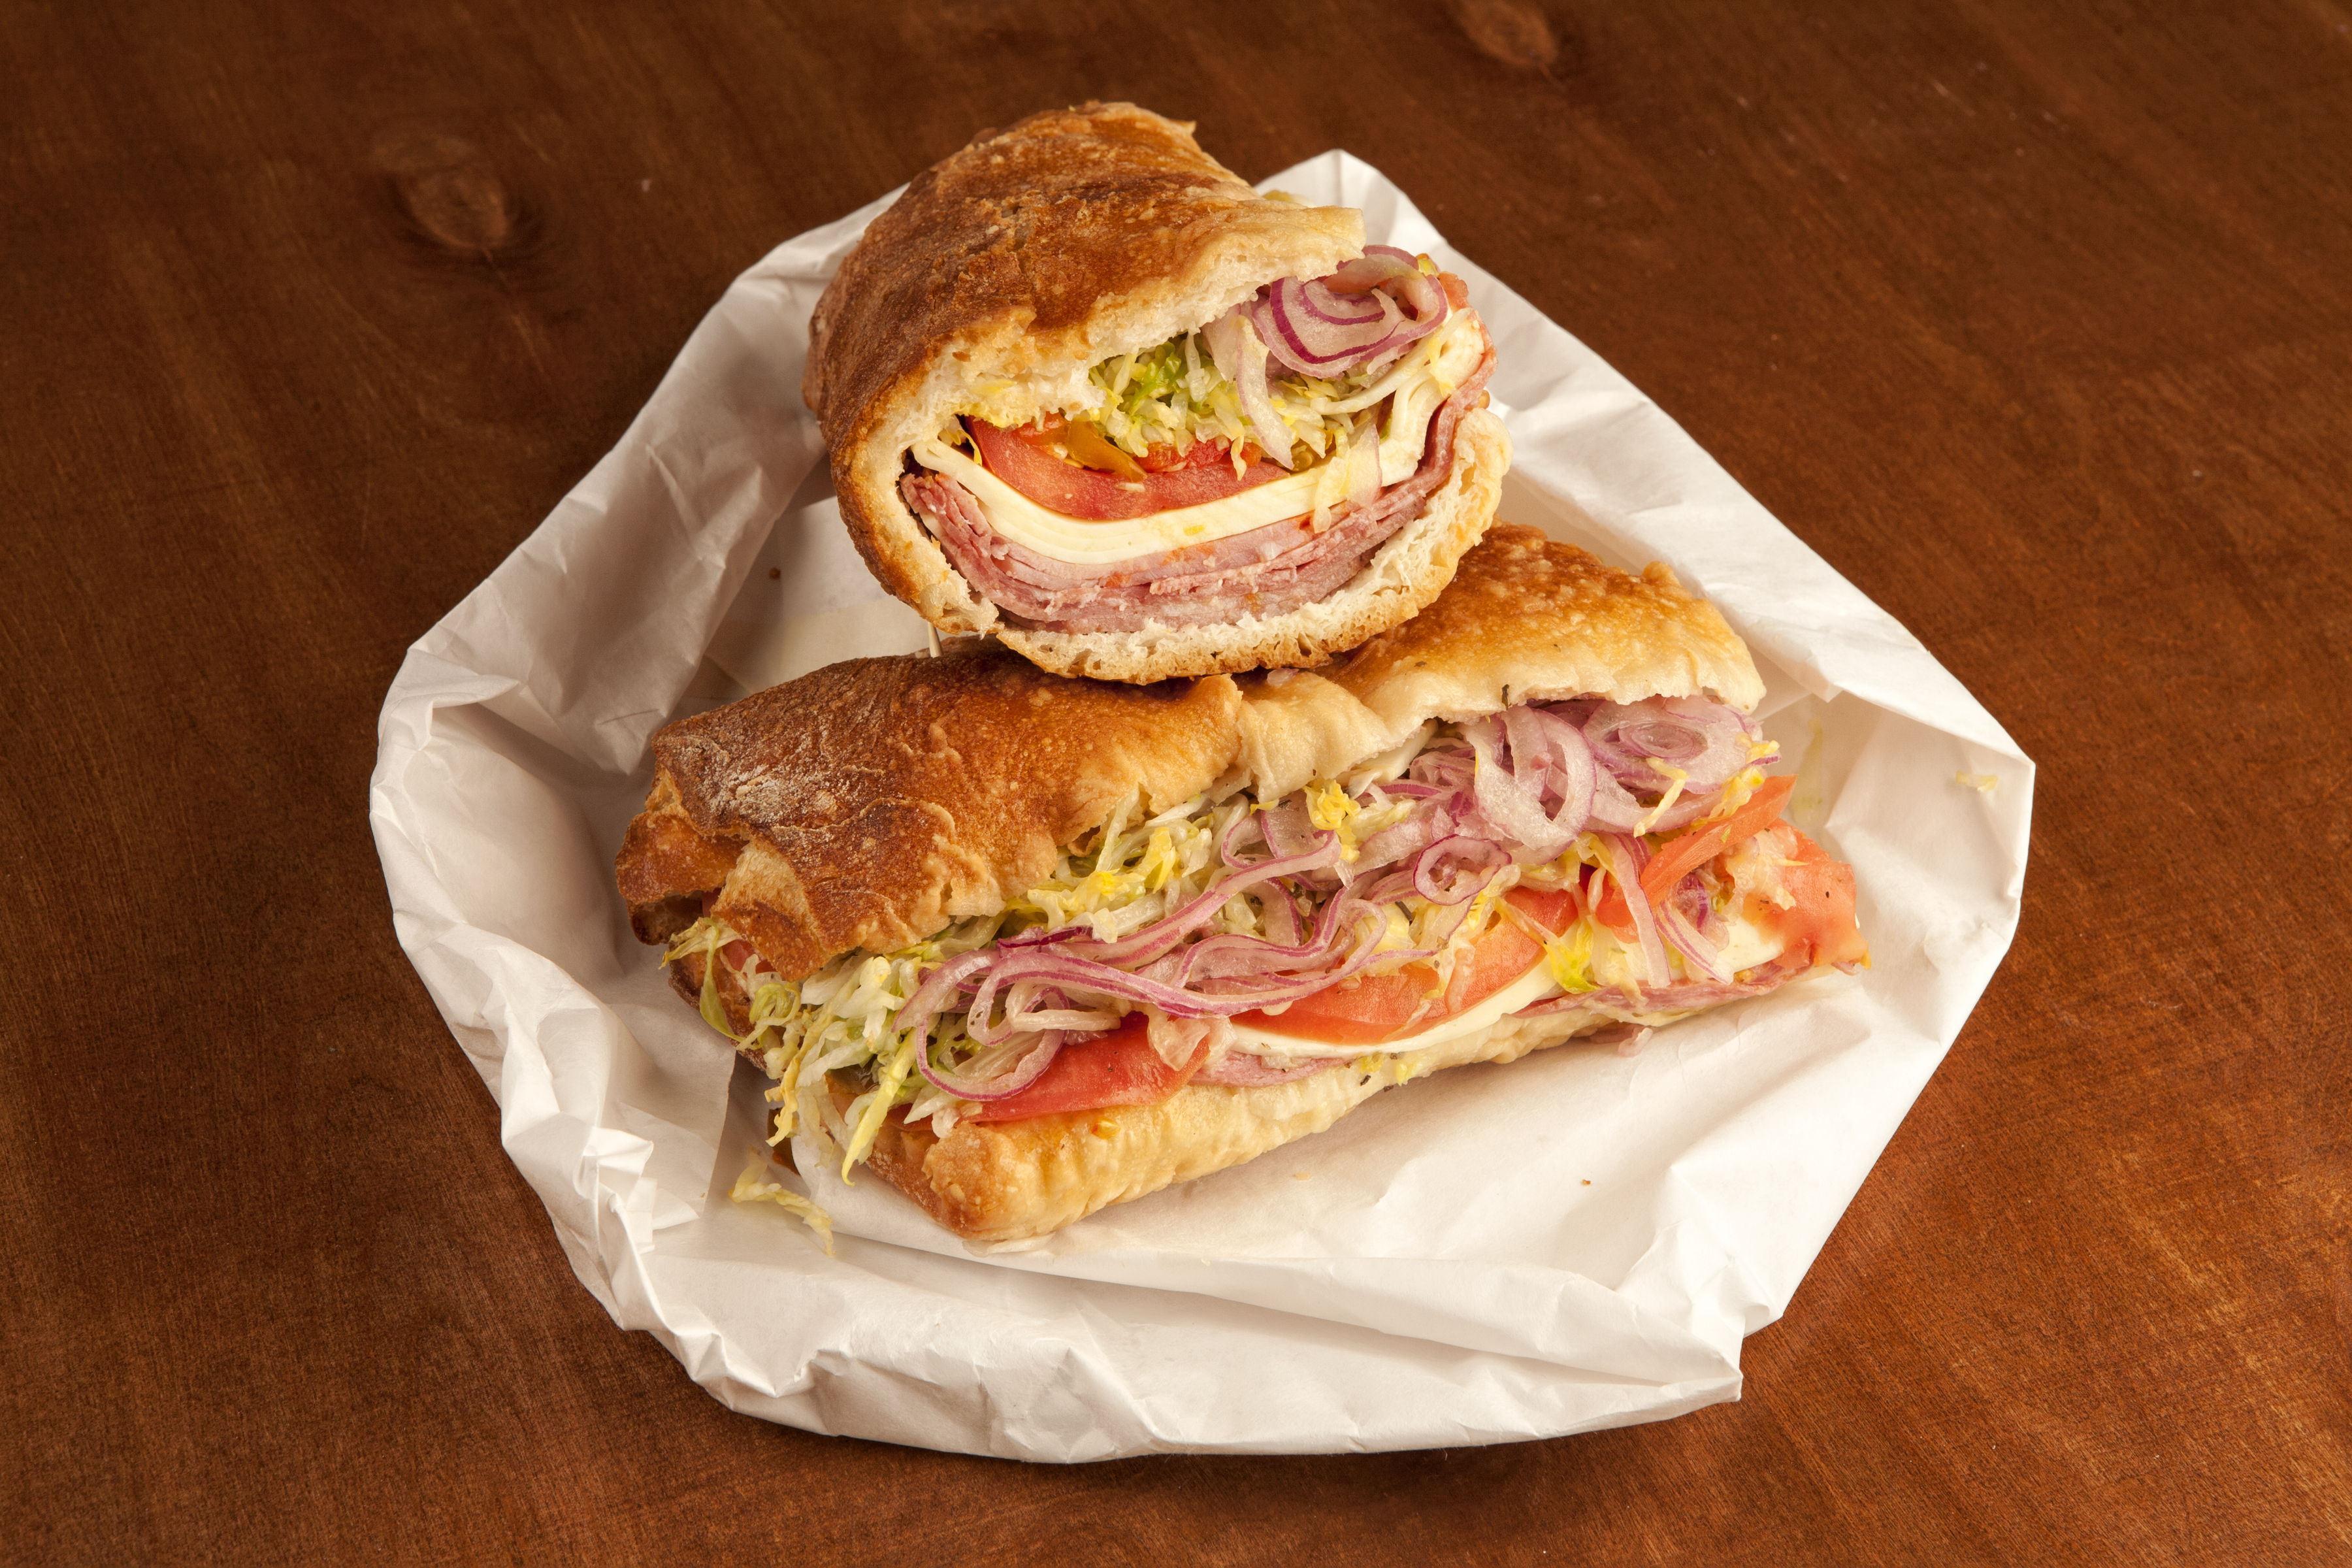 The 4 Meat Grinder, served at Stachowski's Market, 1425 28th St NW in Georgetown, is a behemoth that weighs in more than two pounds, thanks to generously stacked salami, coppa, mortadella and soppressata, all topped with provolone, shredded iceberg lettuce, tomatoes and onions. The meaty sandwich - easily enough to share with a couple of friends - is one of 40 essential eats for 2014.